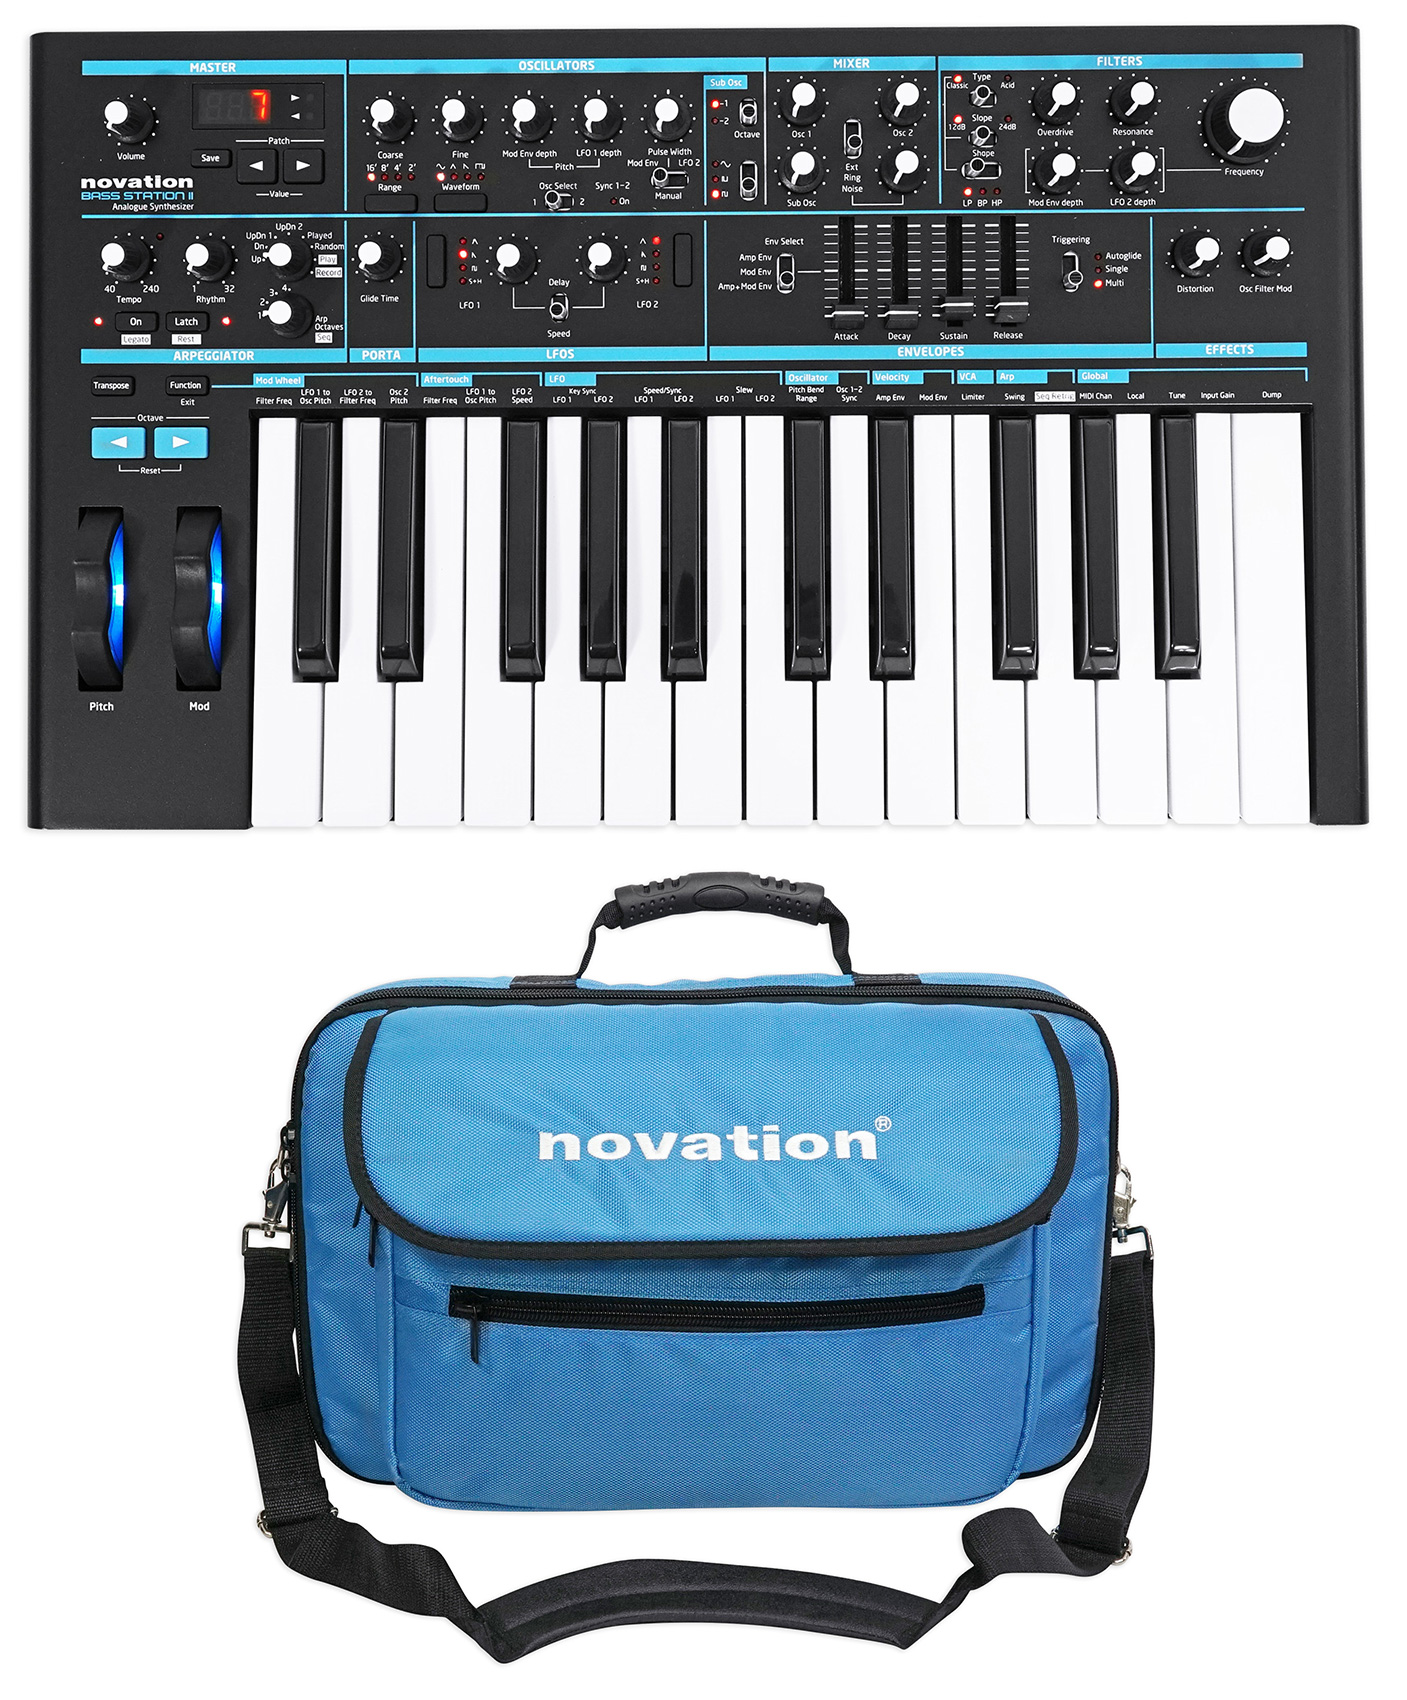 Novation BASS STATION II 25-Key MIDI USB Analog Keyboard Synthesizer + Carry Bag by NOVATION